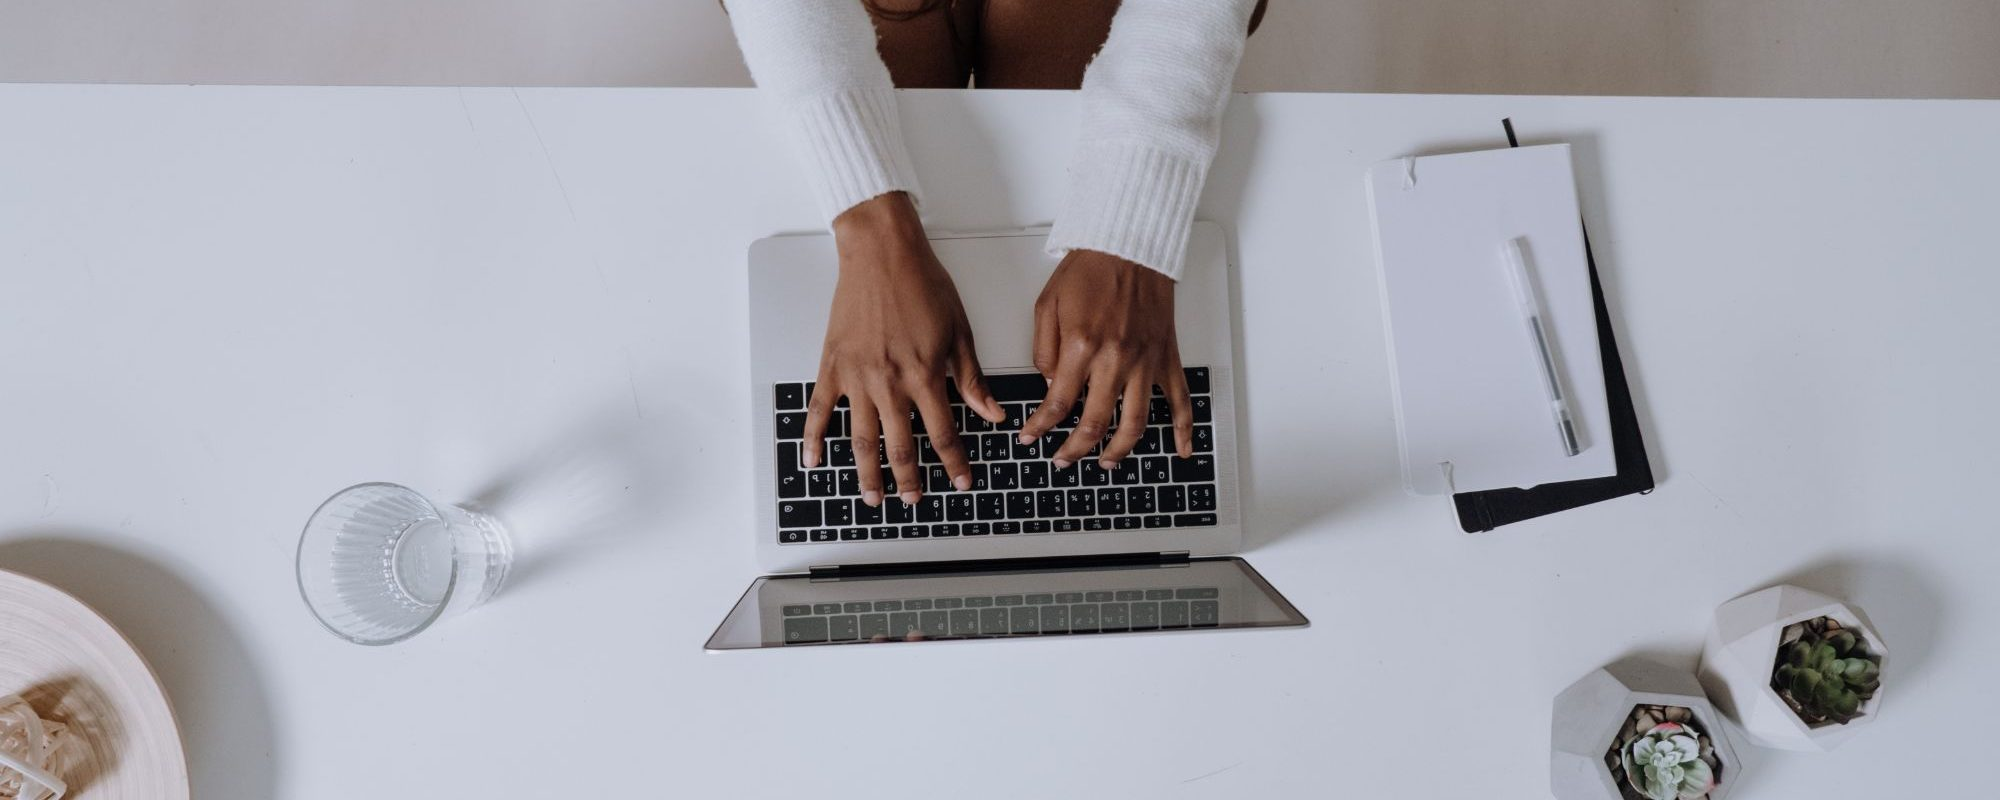 Remote worker at white desk typing on laptop